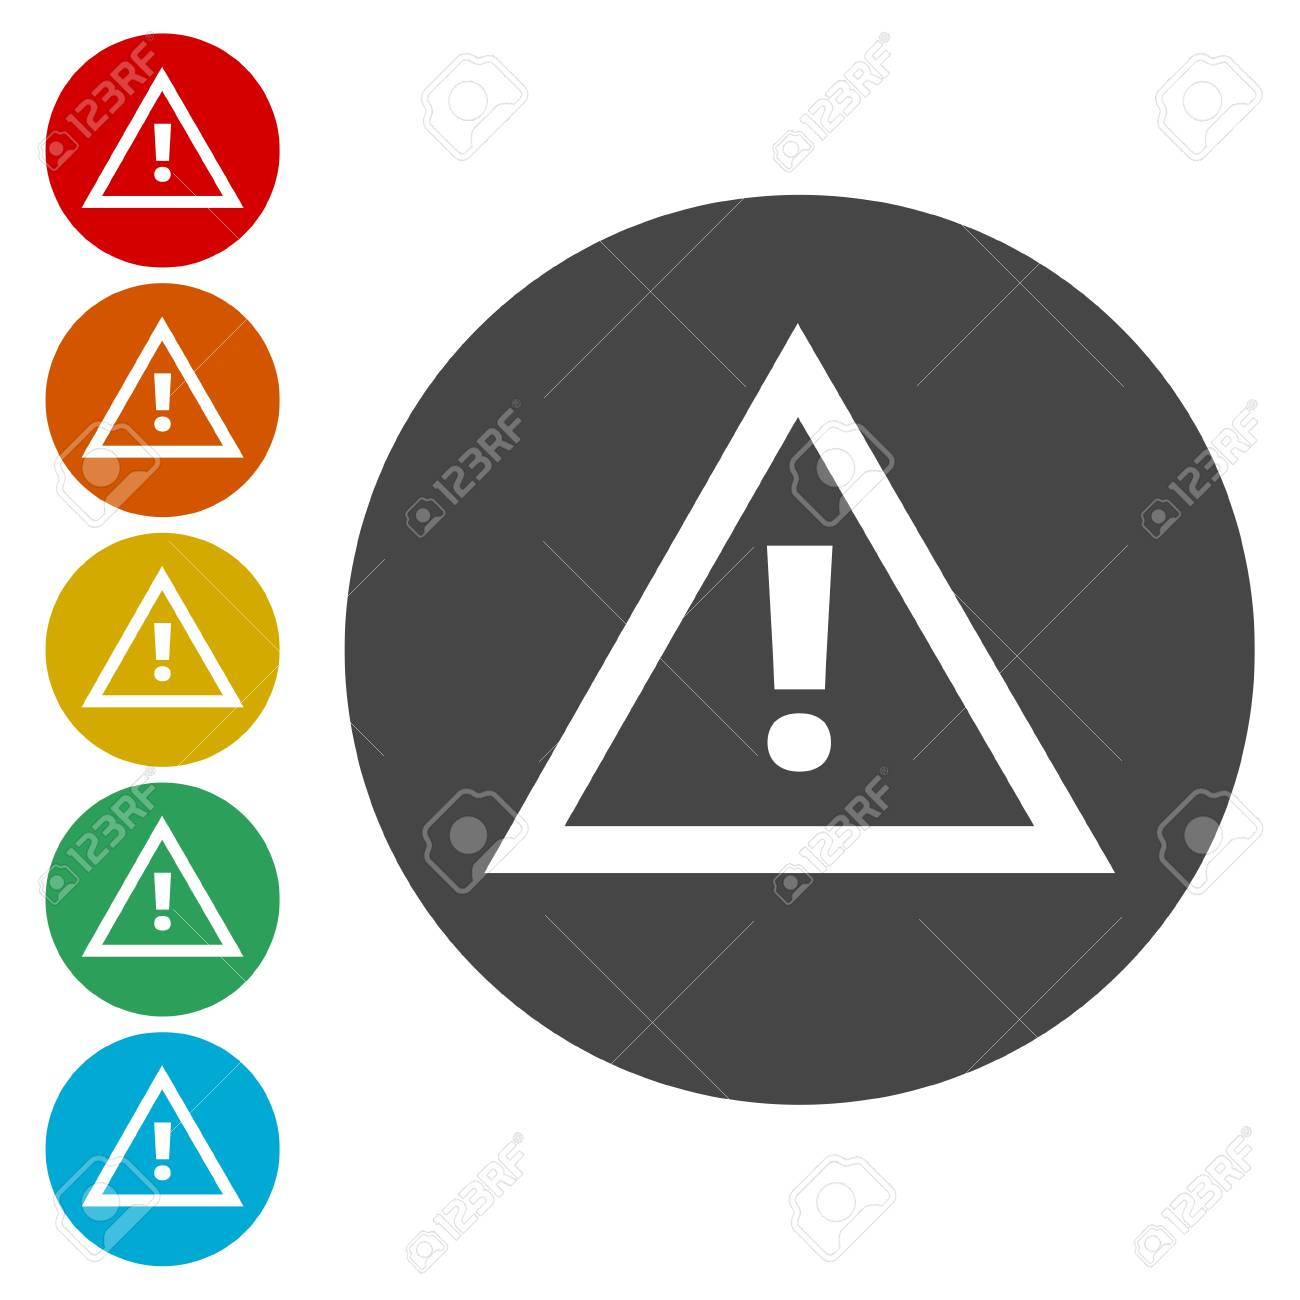 Attention caution sign icon exclamation mark hazard warning attention caution sign icon exclamation mark hazard warning symbol stock vector 76585339 biocorpaavc